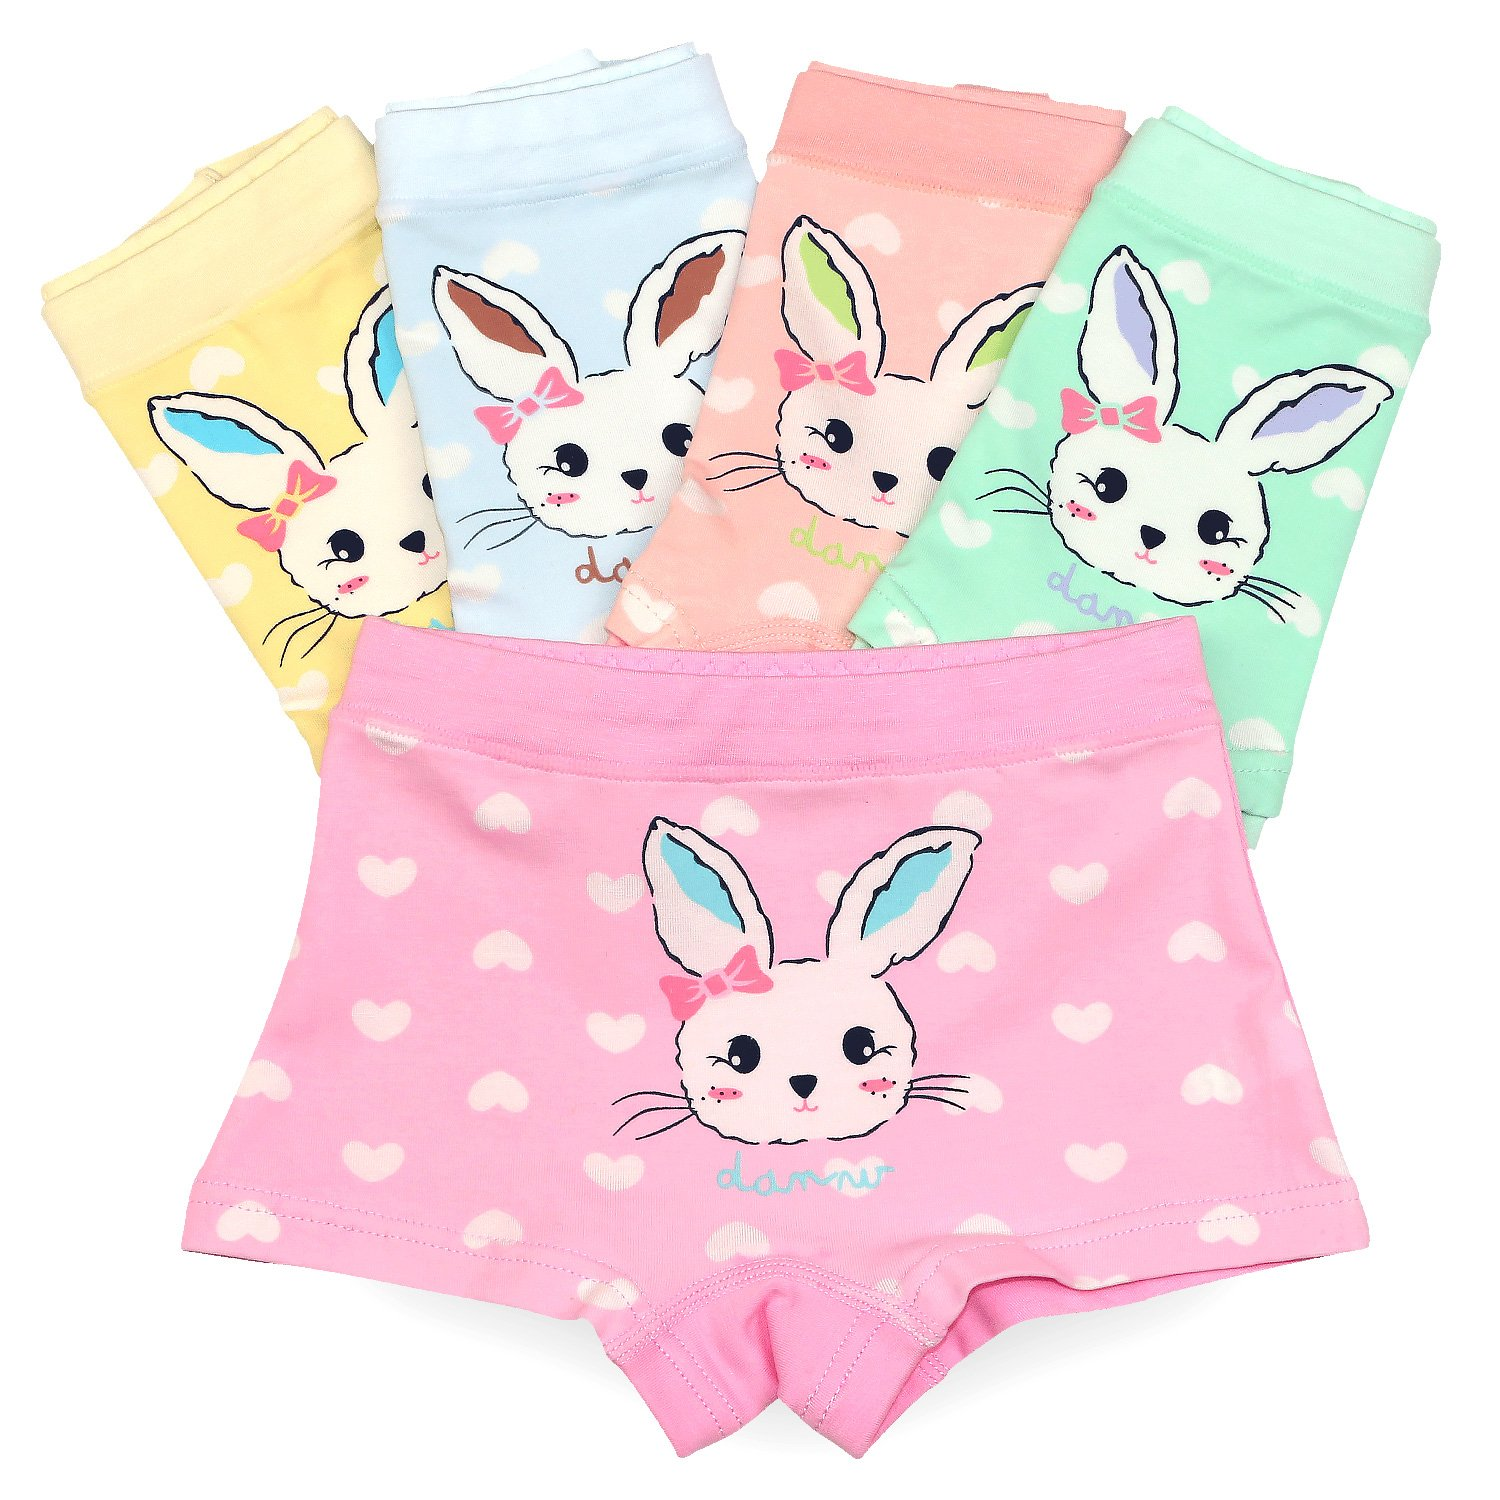 BOOPH Rabbit Girls Underwear Pack of 5 Toddler Panties Cute Cotton Bunny Boyshort for Girls 2-13 Years